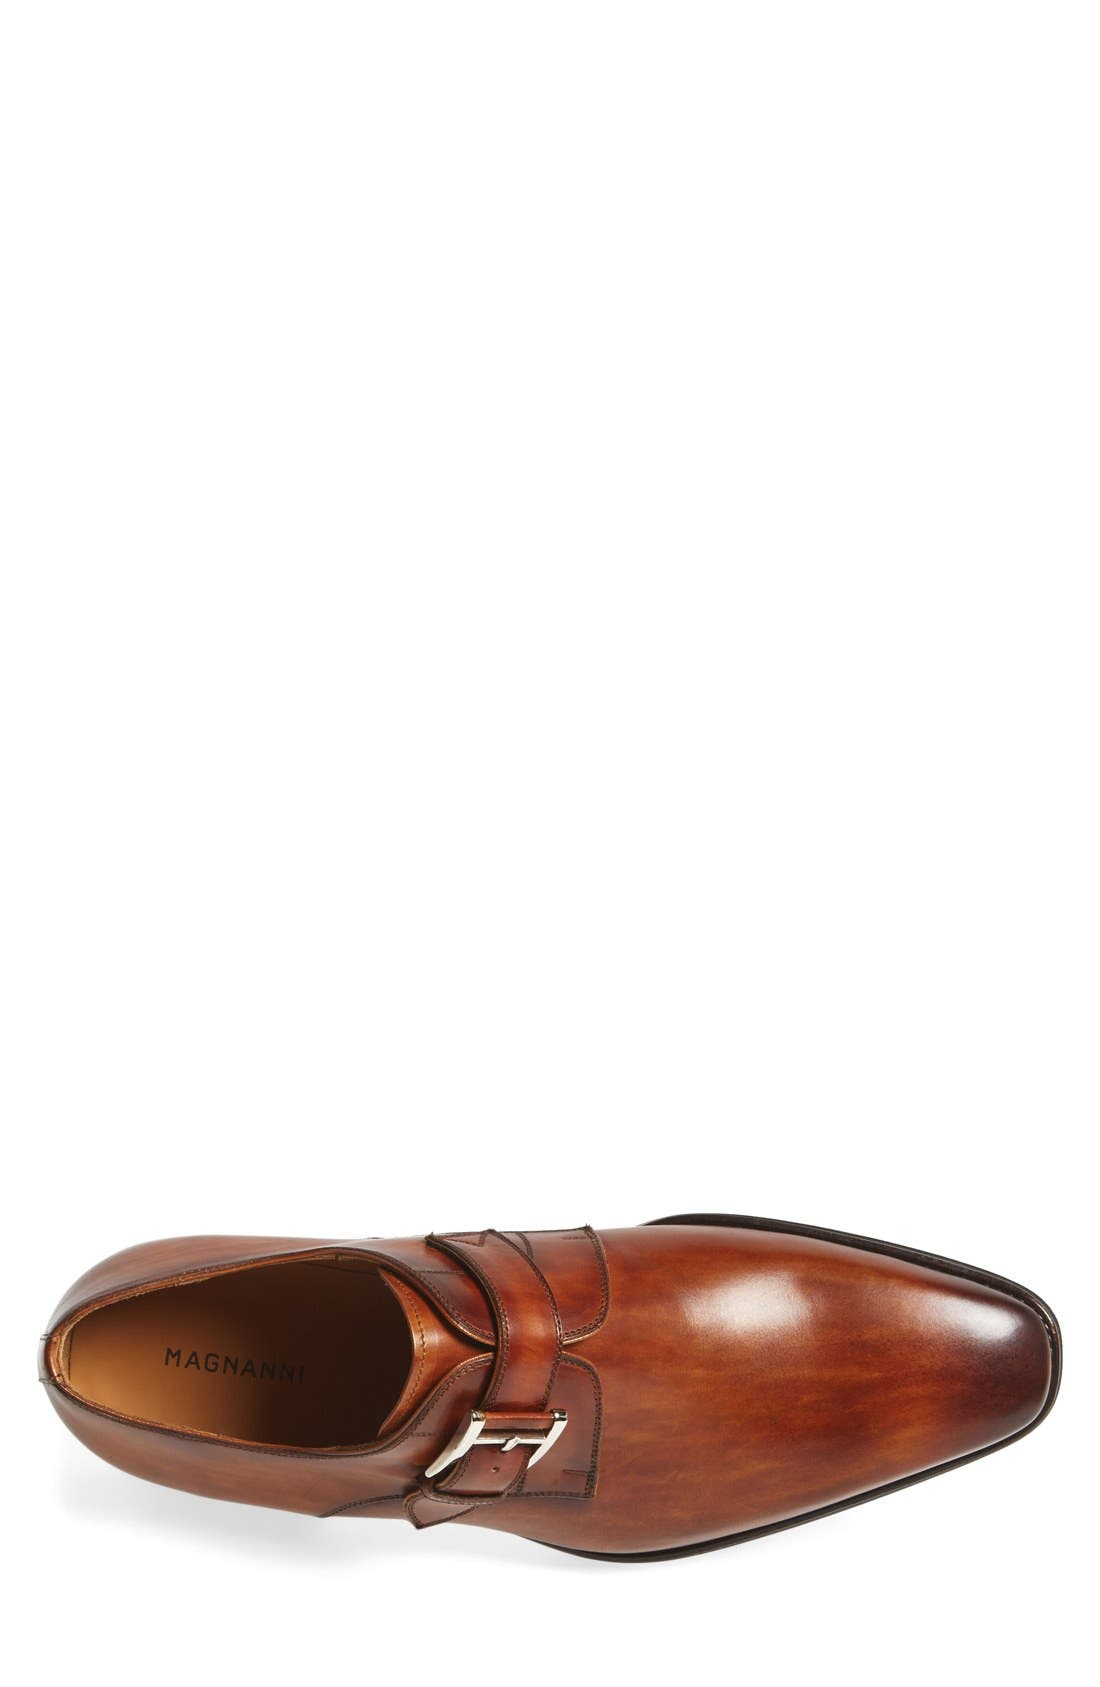 Marco Monk Strap Loafer,                             Alternate thumbnail 3, color,                             Cuero Brown Leather